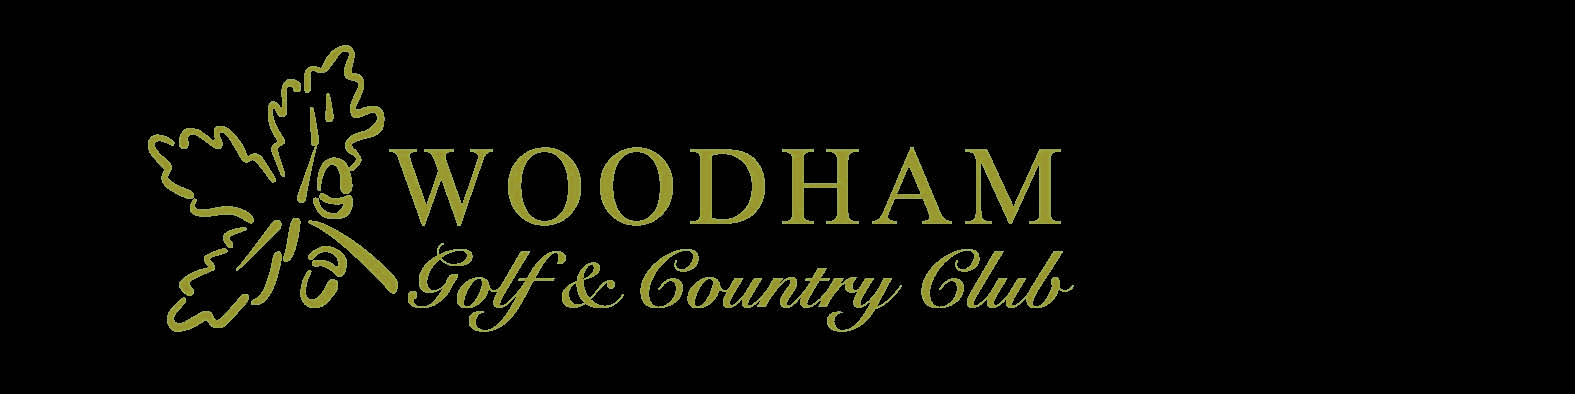 Woodham Golf Course Donated for Rotary Charity Competition